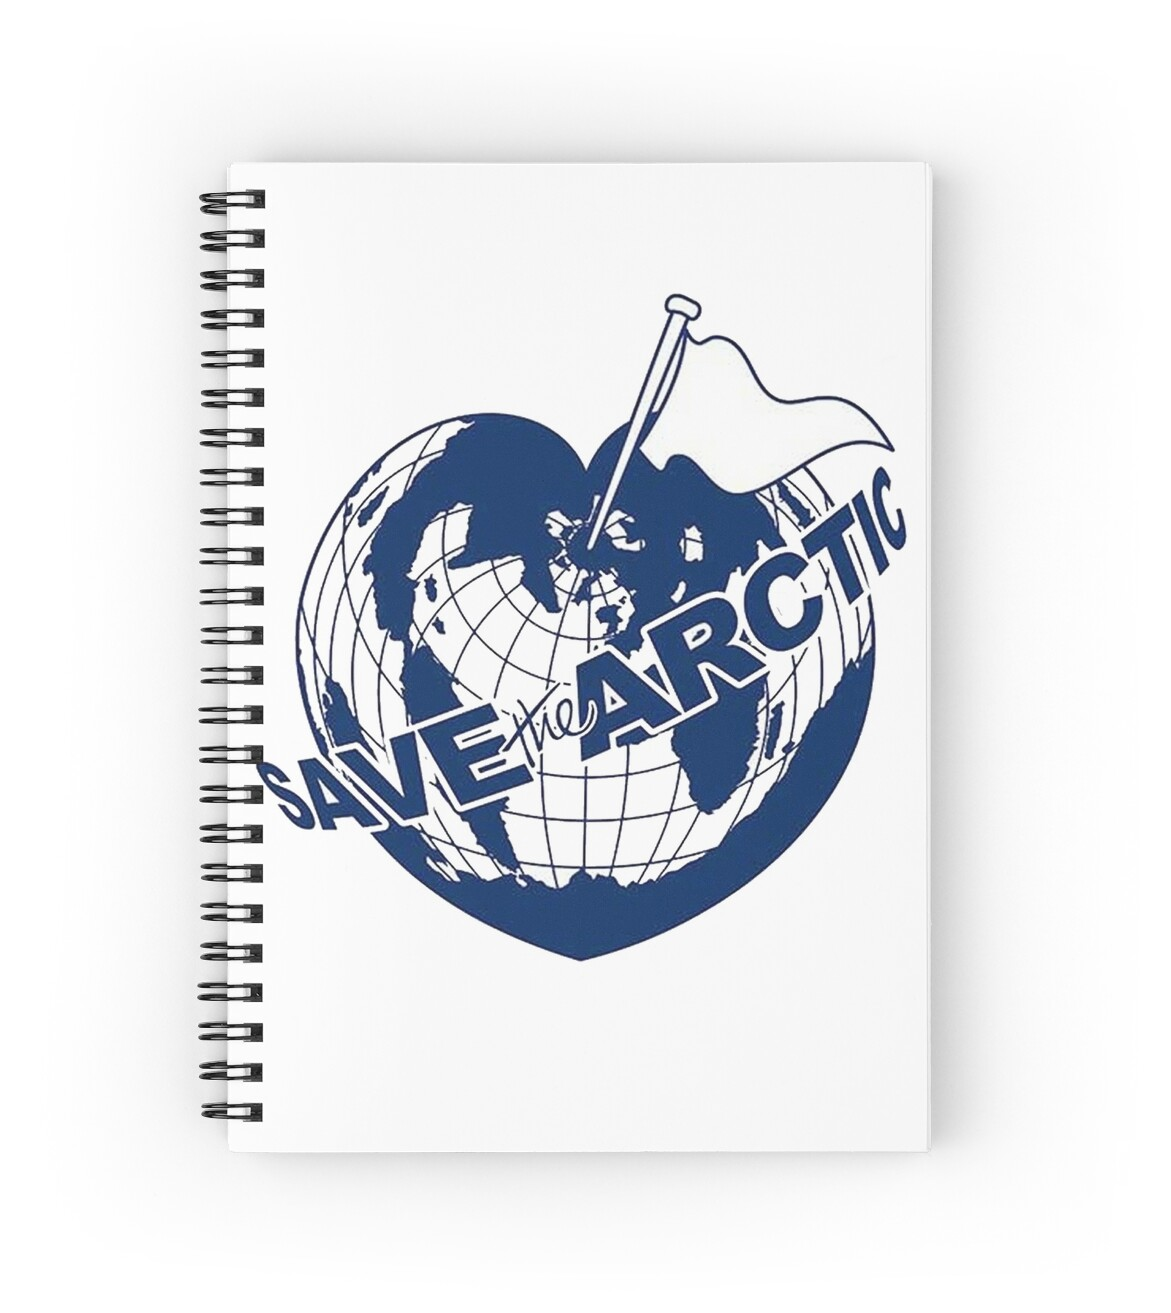 Wall Art Greenpeace : Quot save the arctic greenpeace spiral notebooks by rebecca